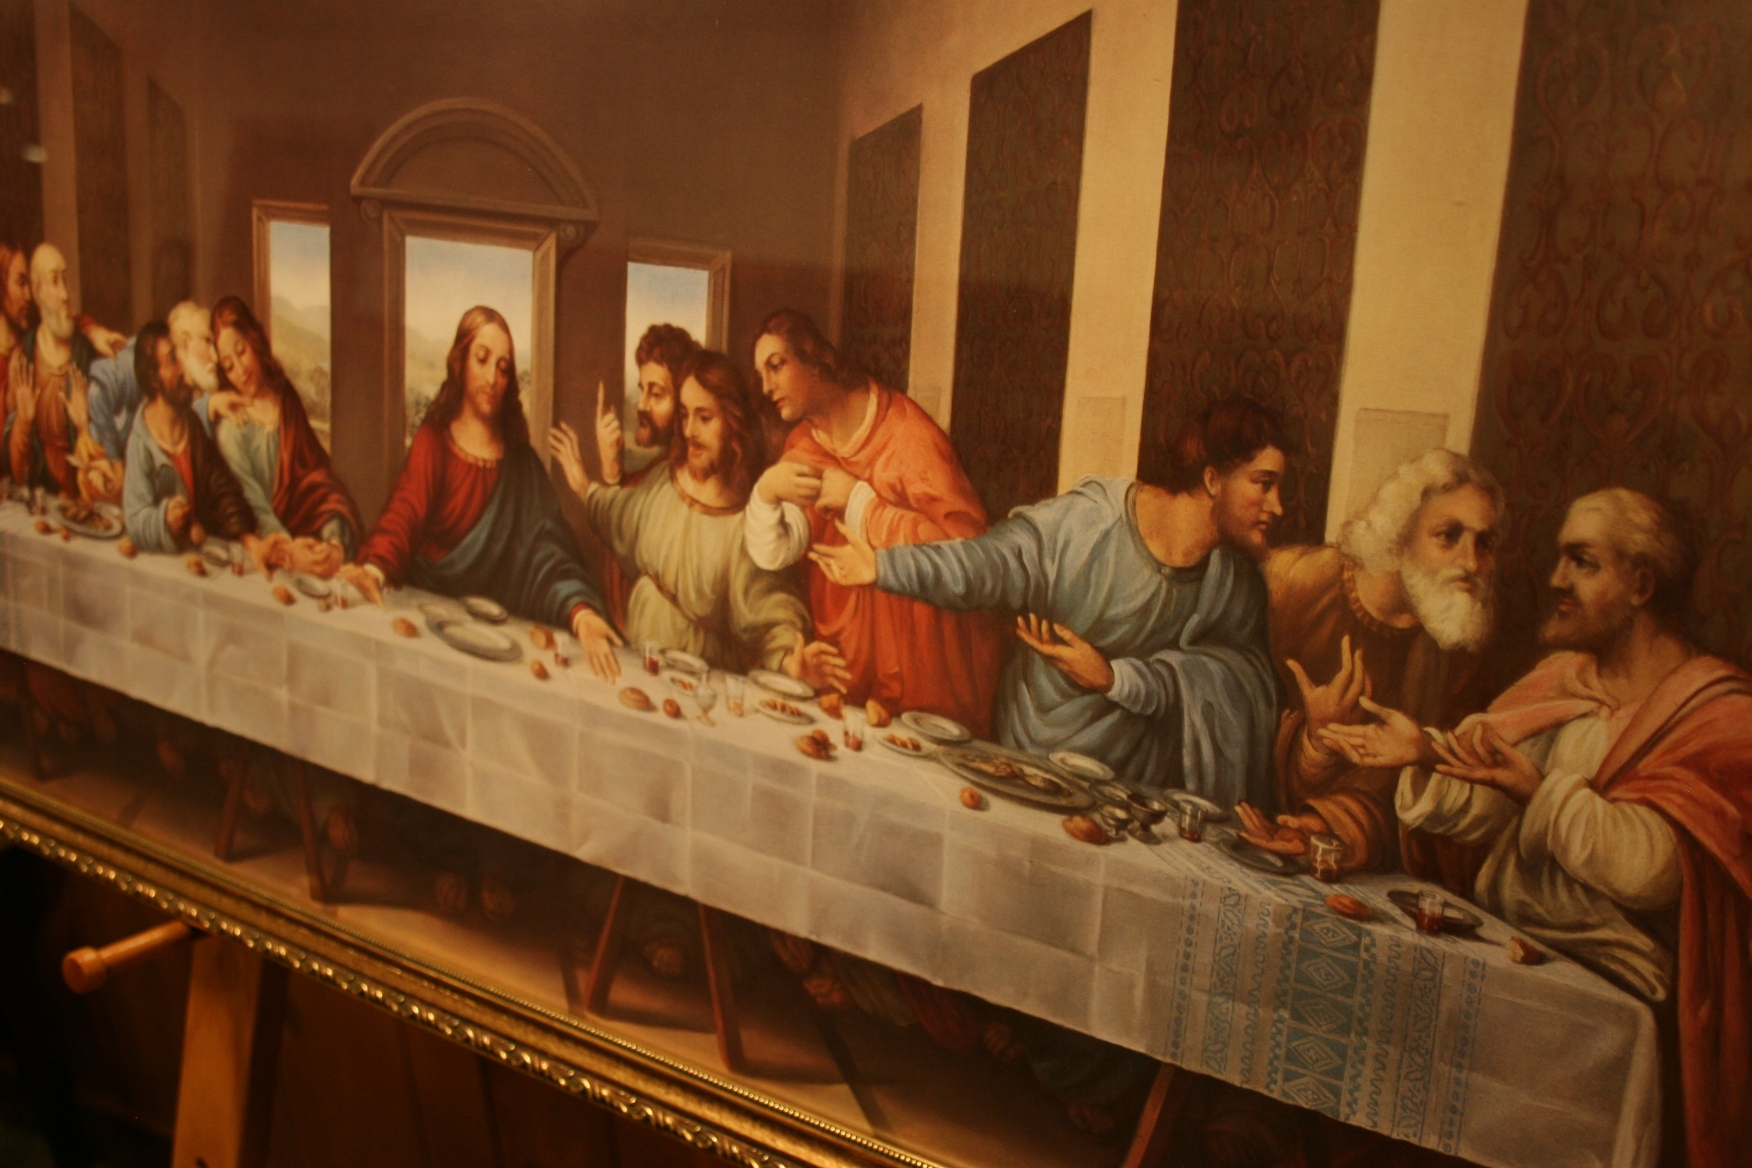 an analysis of last supper by da vinci A study of 'the last supper' by leonardo da vinci together with analysis of the 'theories' about this painting.